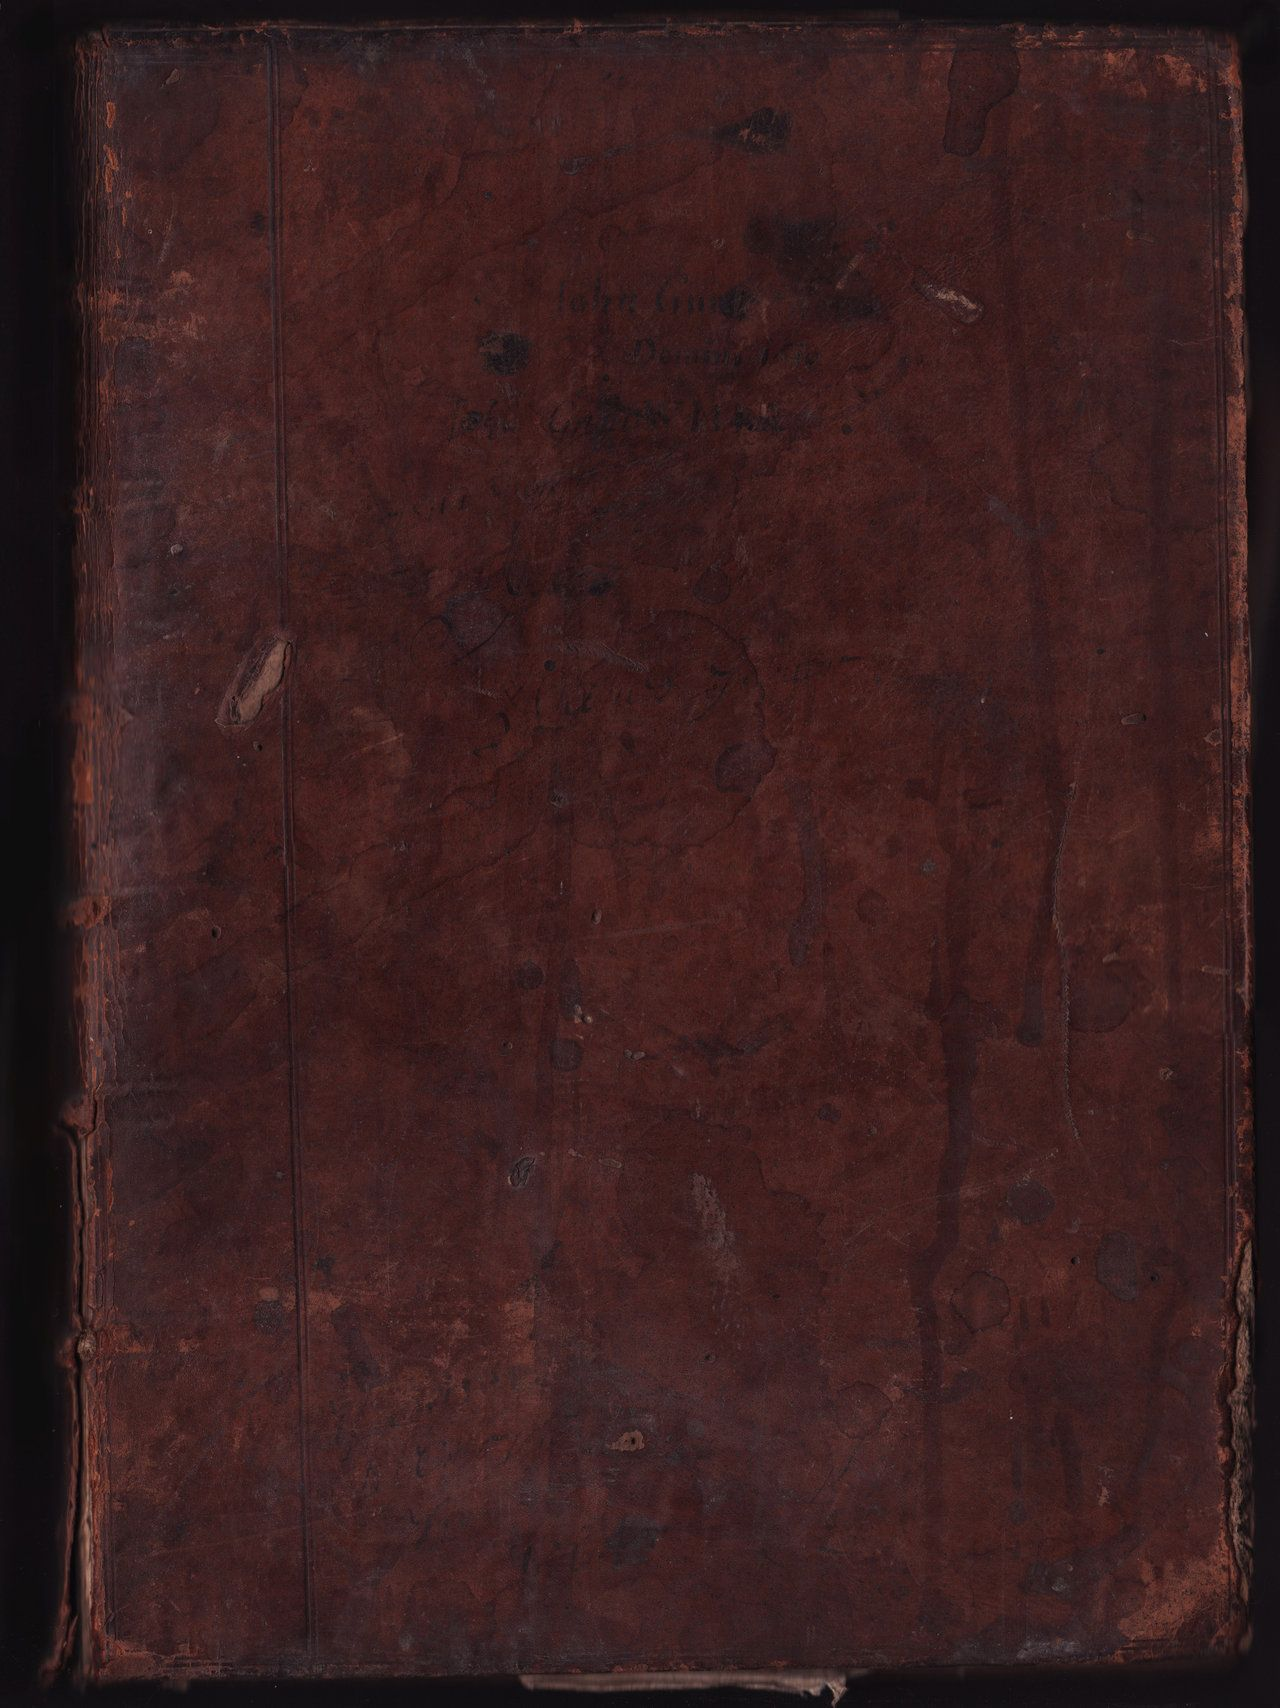 Leather Book Cover Texture : Old leather book by enginemonkey on deviantart projects